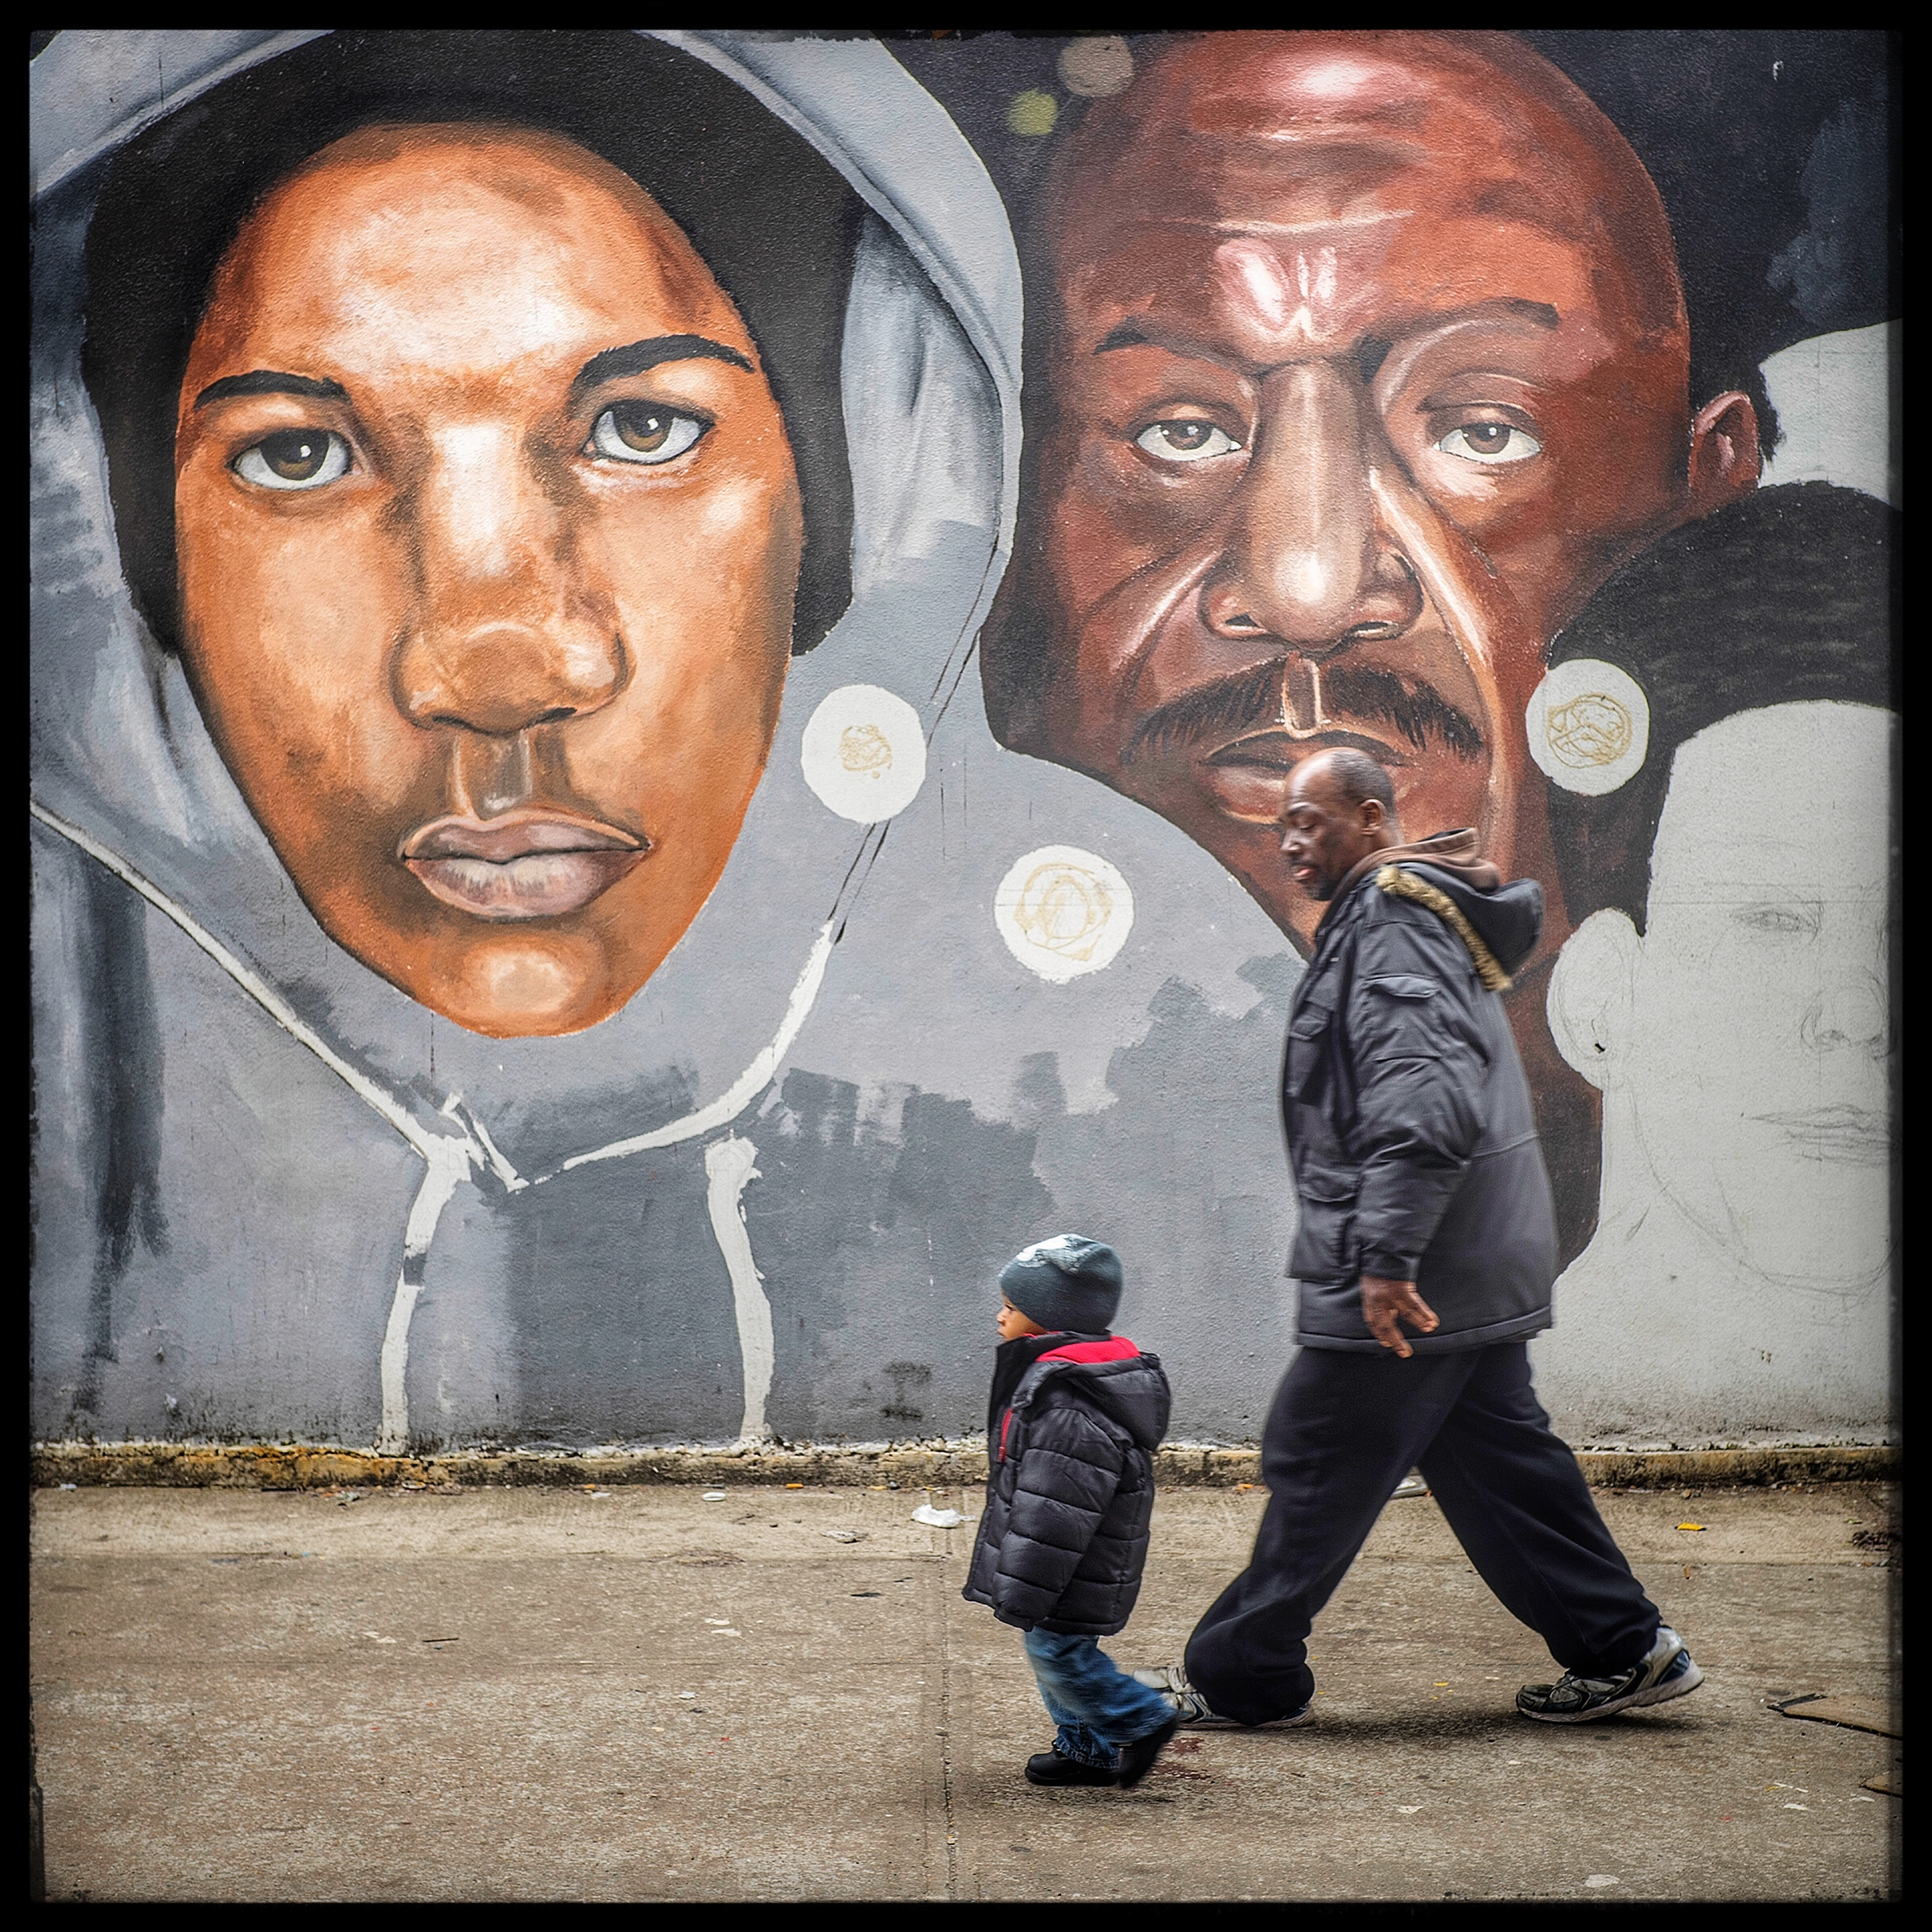 A father and son reflected against the portrait of Trayvon Martin's face on the mural in Brooklyn.